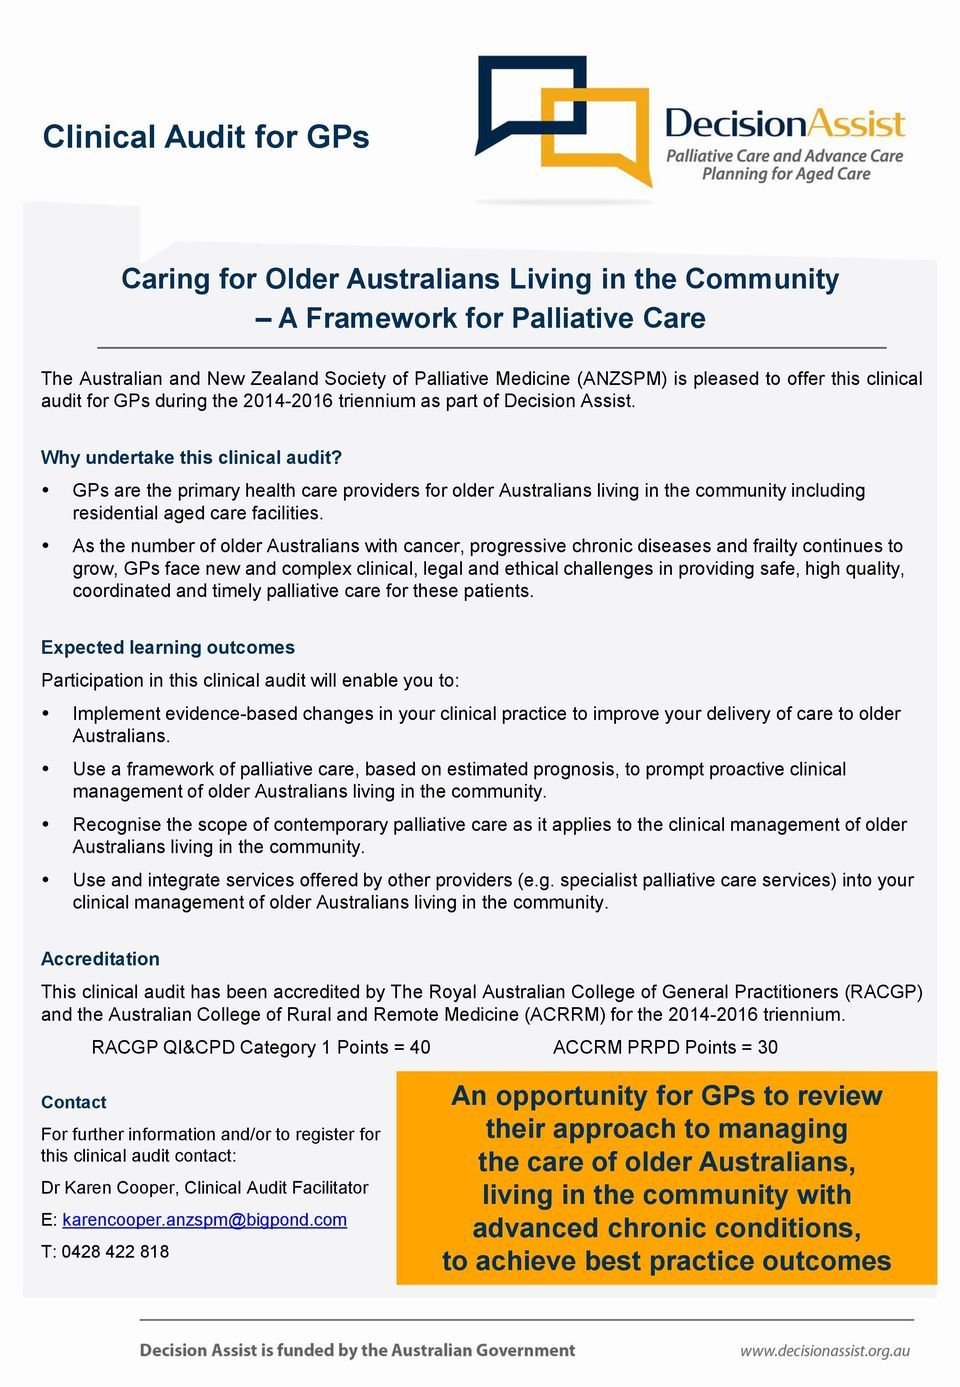 GPs are the primary health care providers for older Australians living in the community including residential aged care facilities.